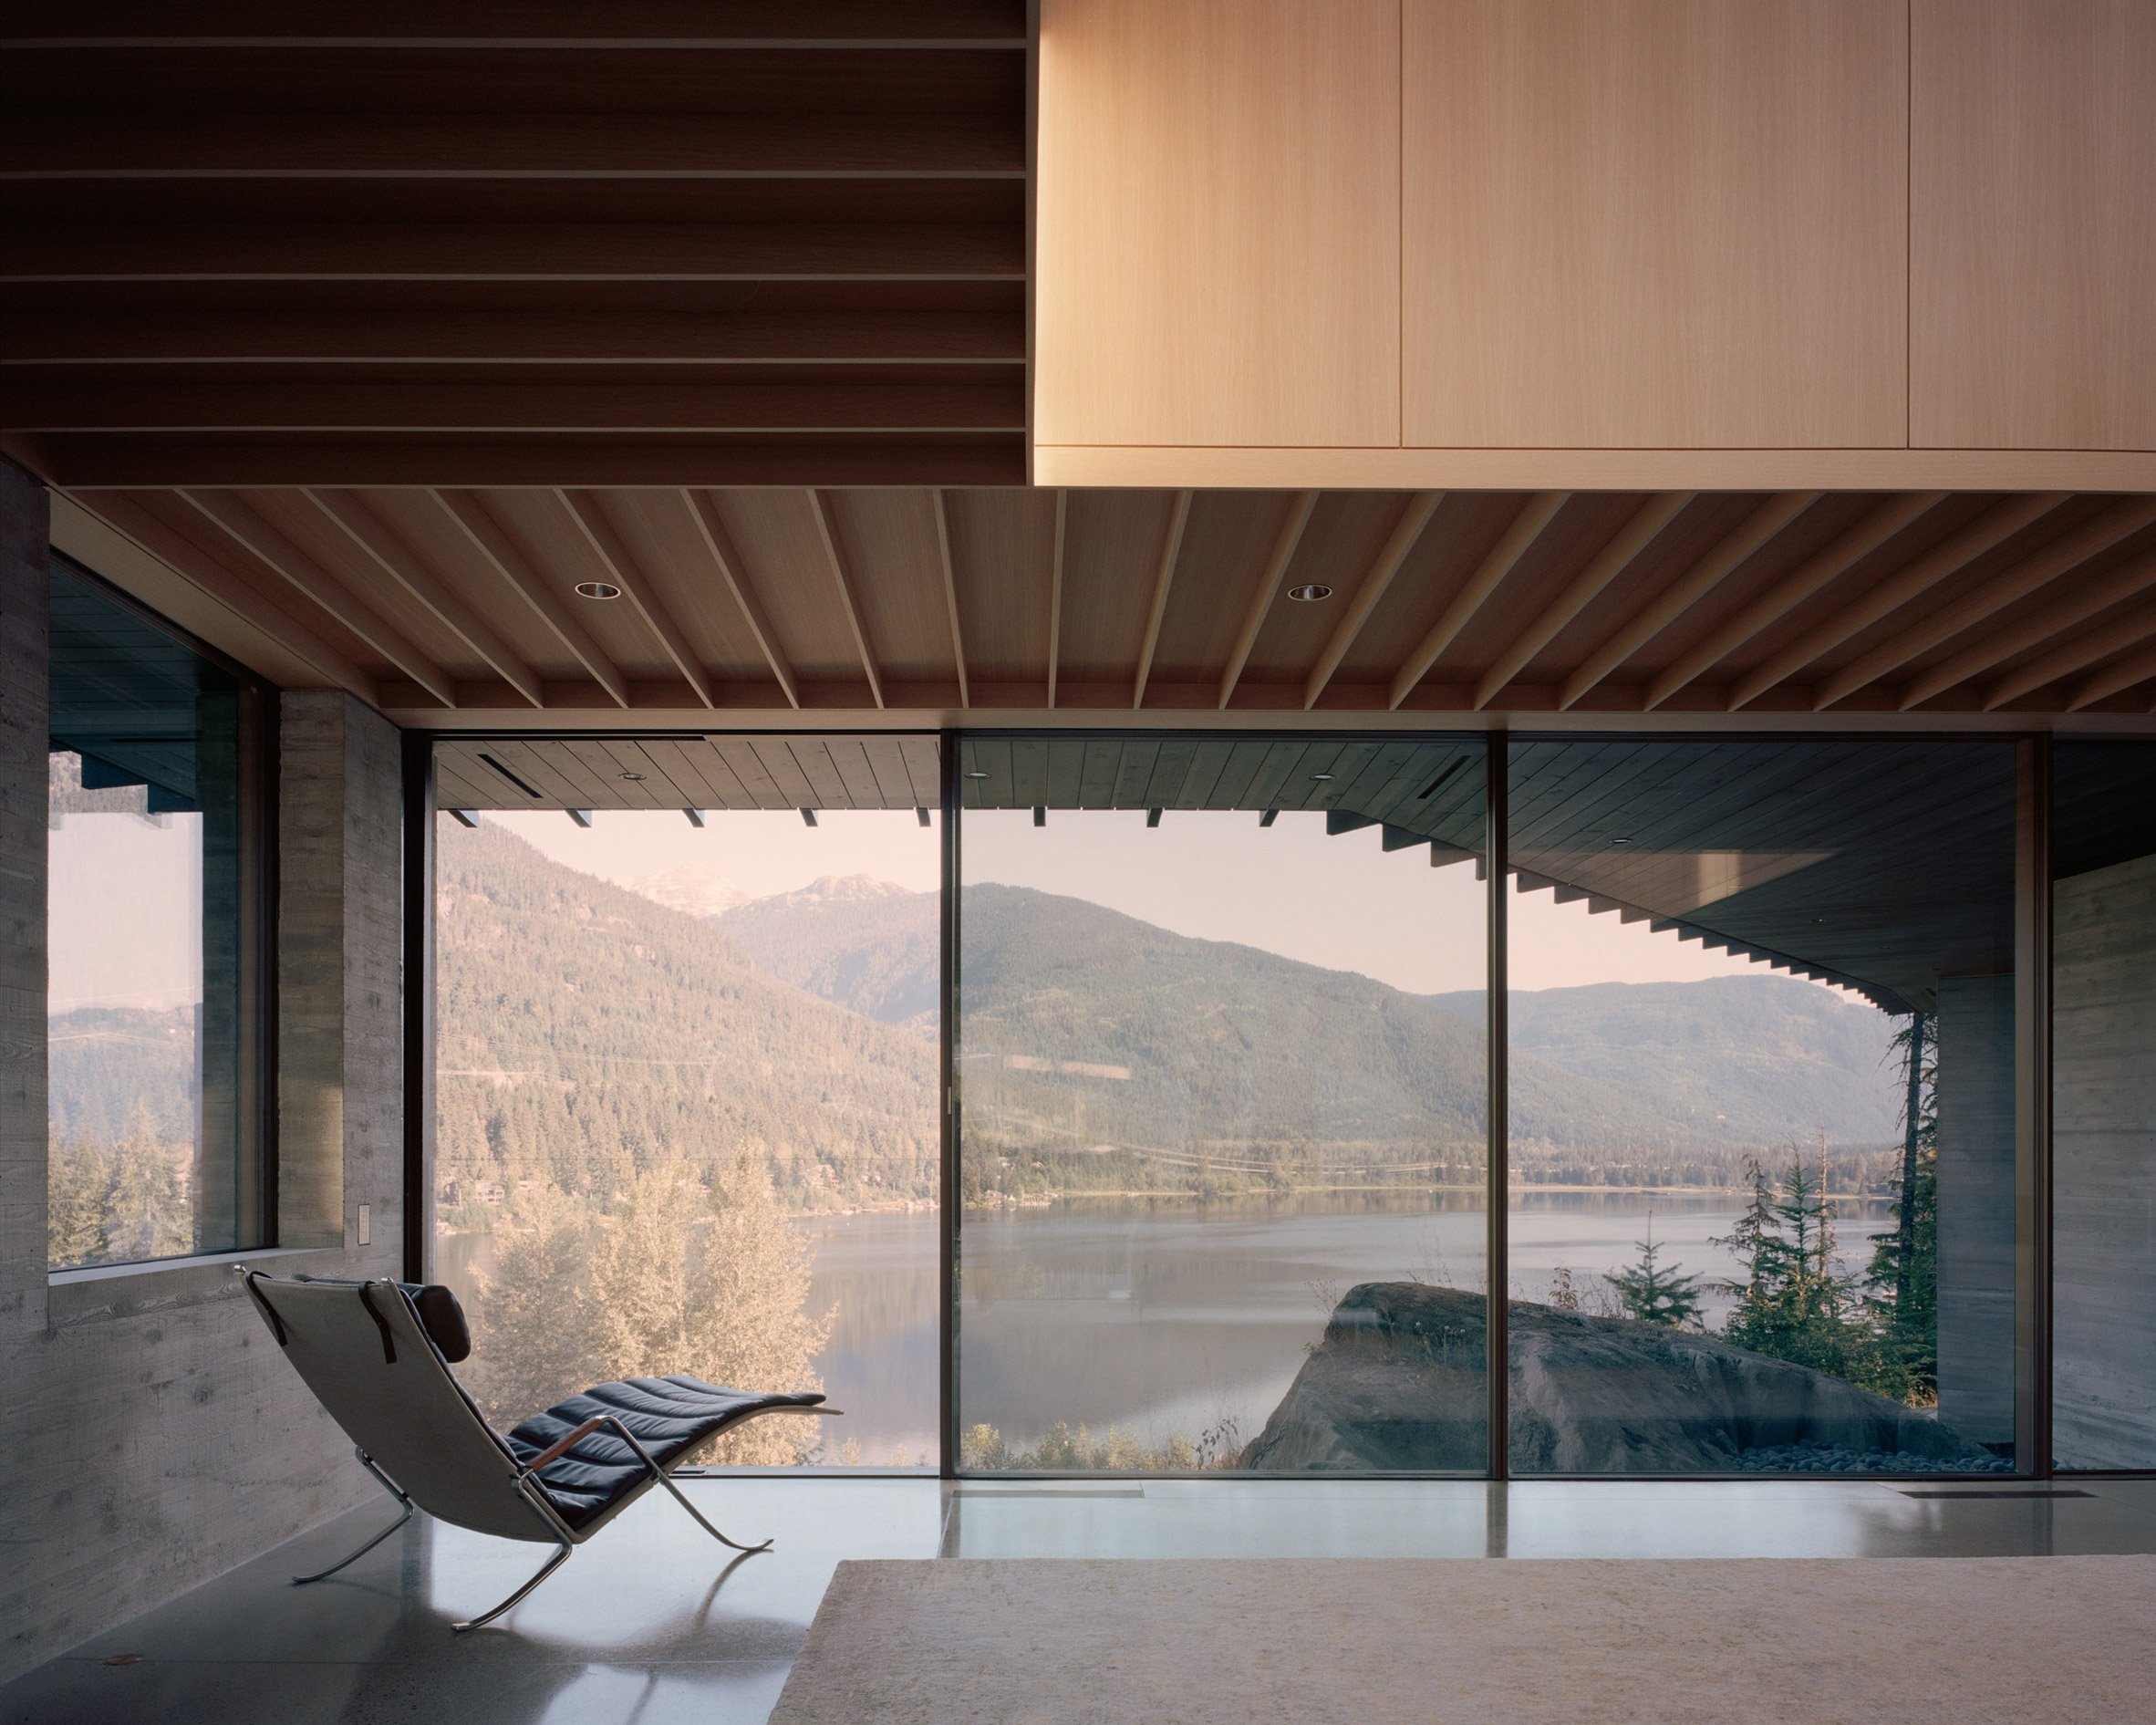 Window overlooking the lake, The Rock house in Whistler by Gort Scott